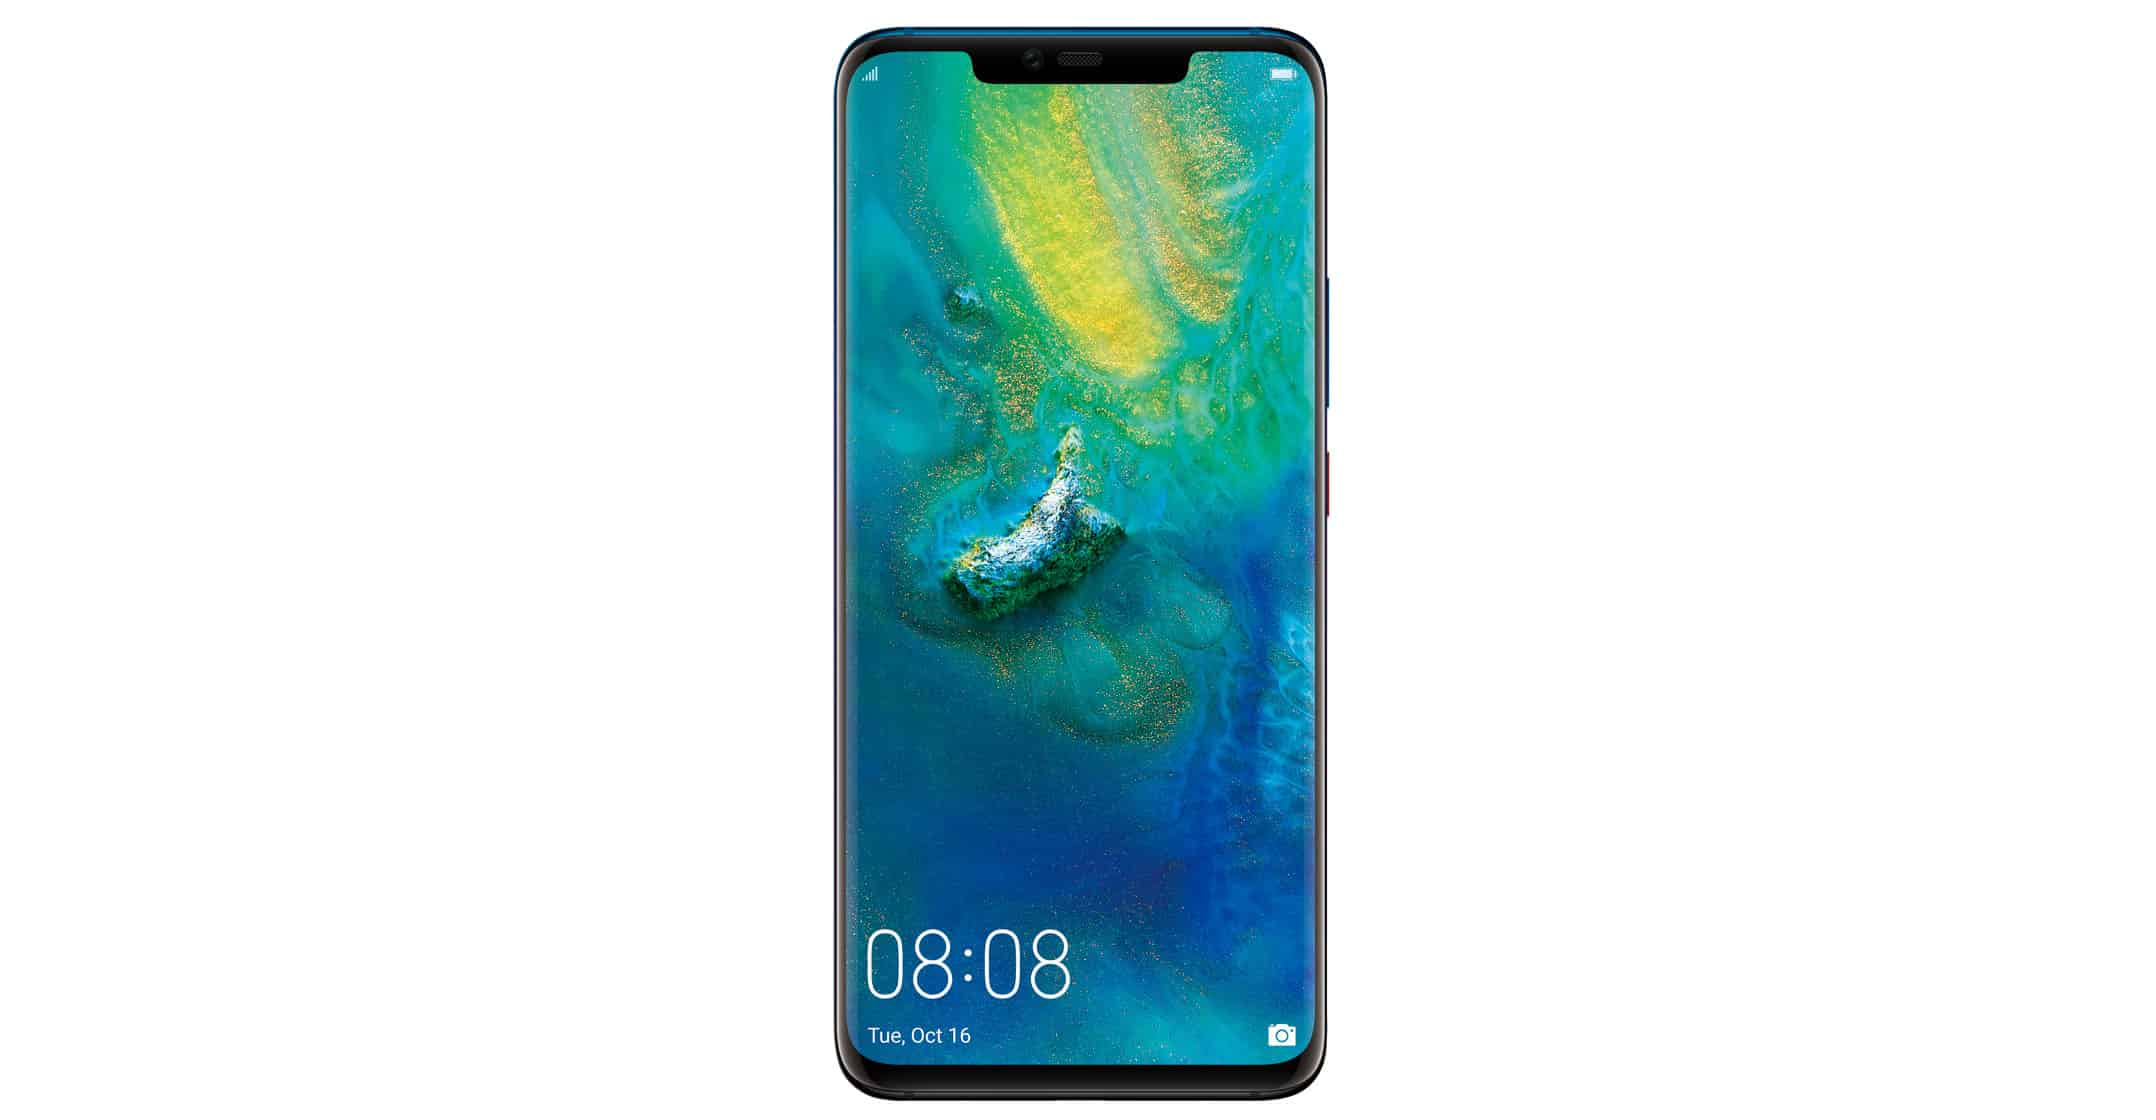 Download Huawei Mate 30 Pro Stock Wallpapers in Full HD+ resolution